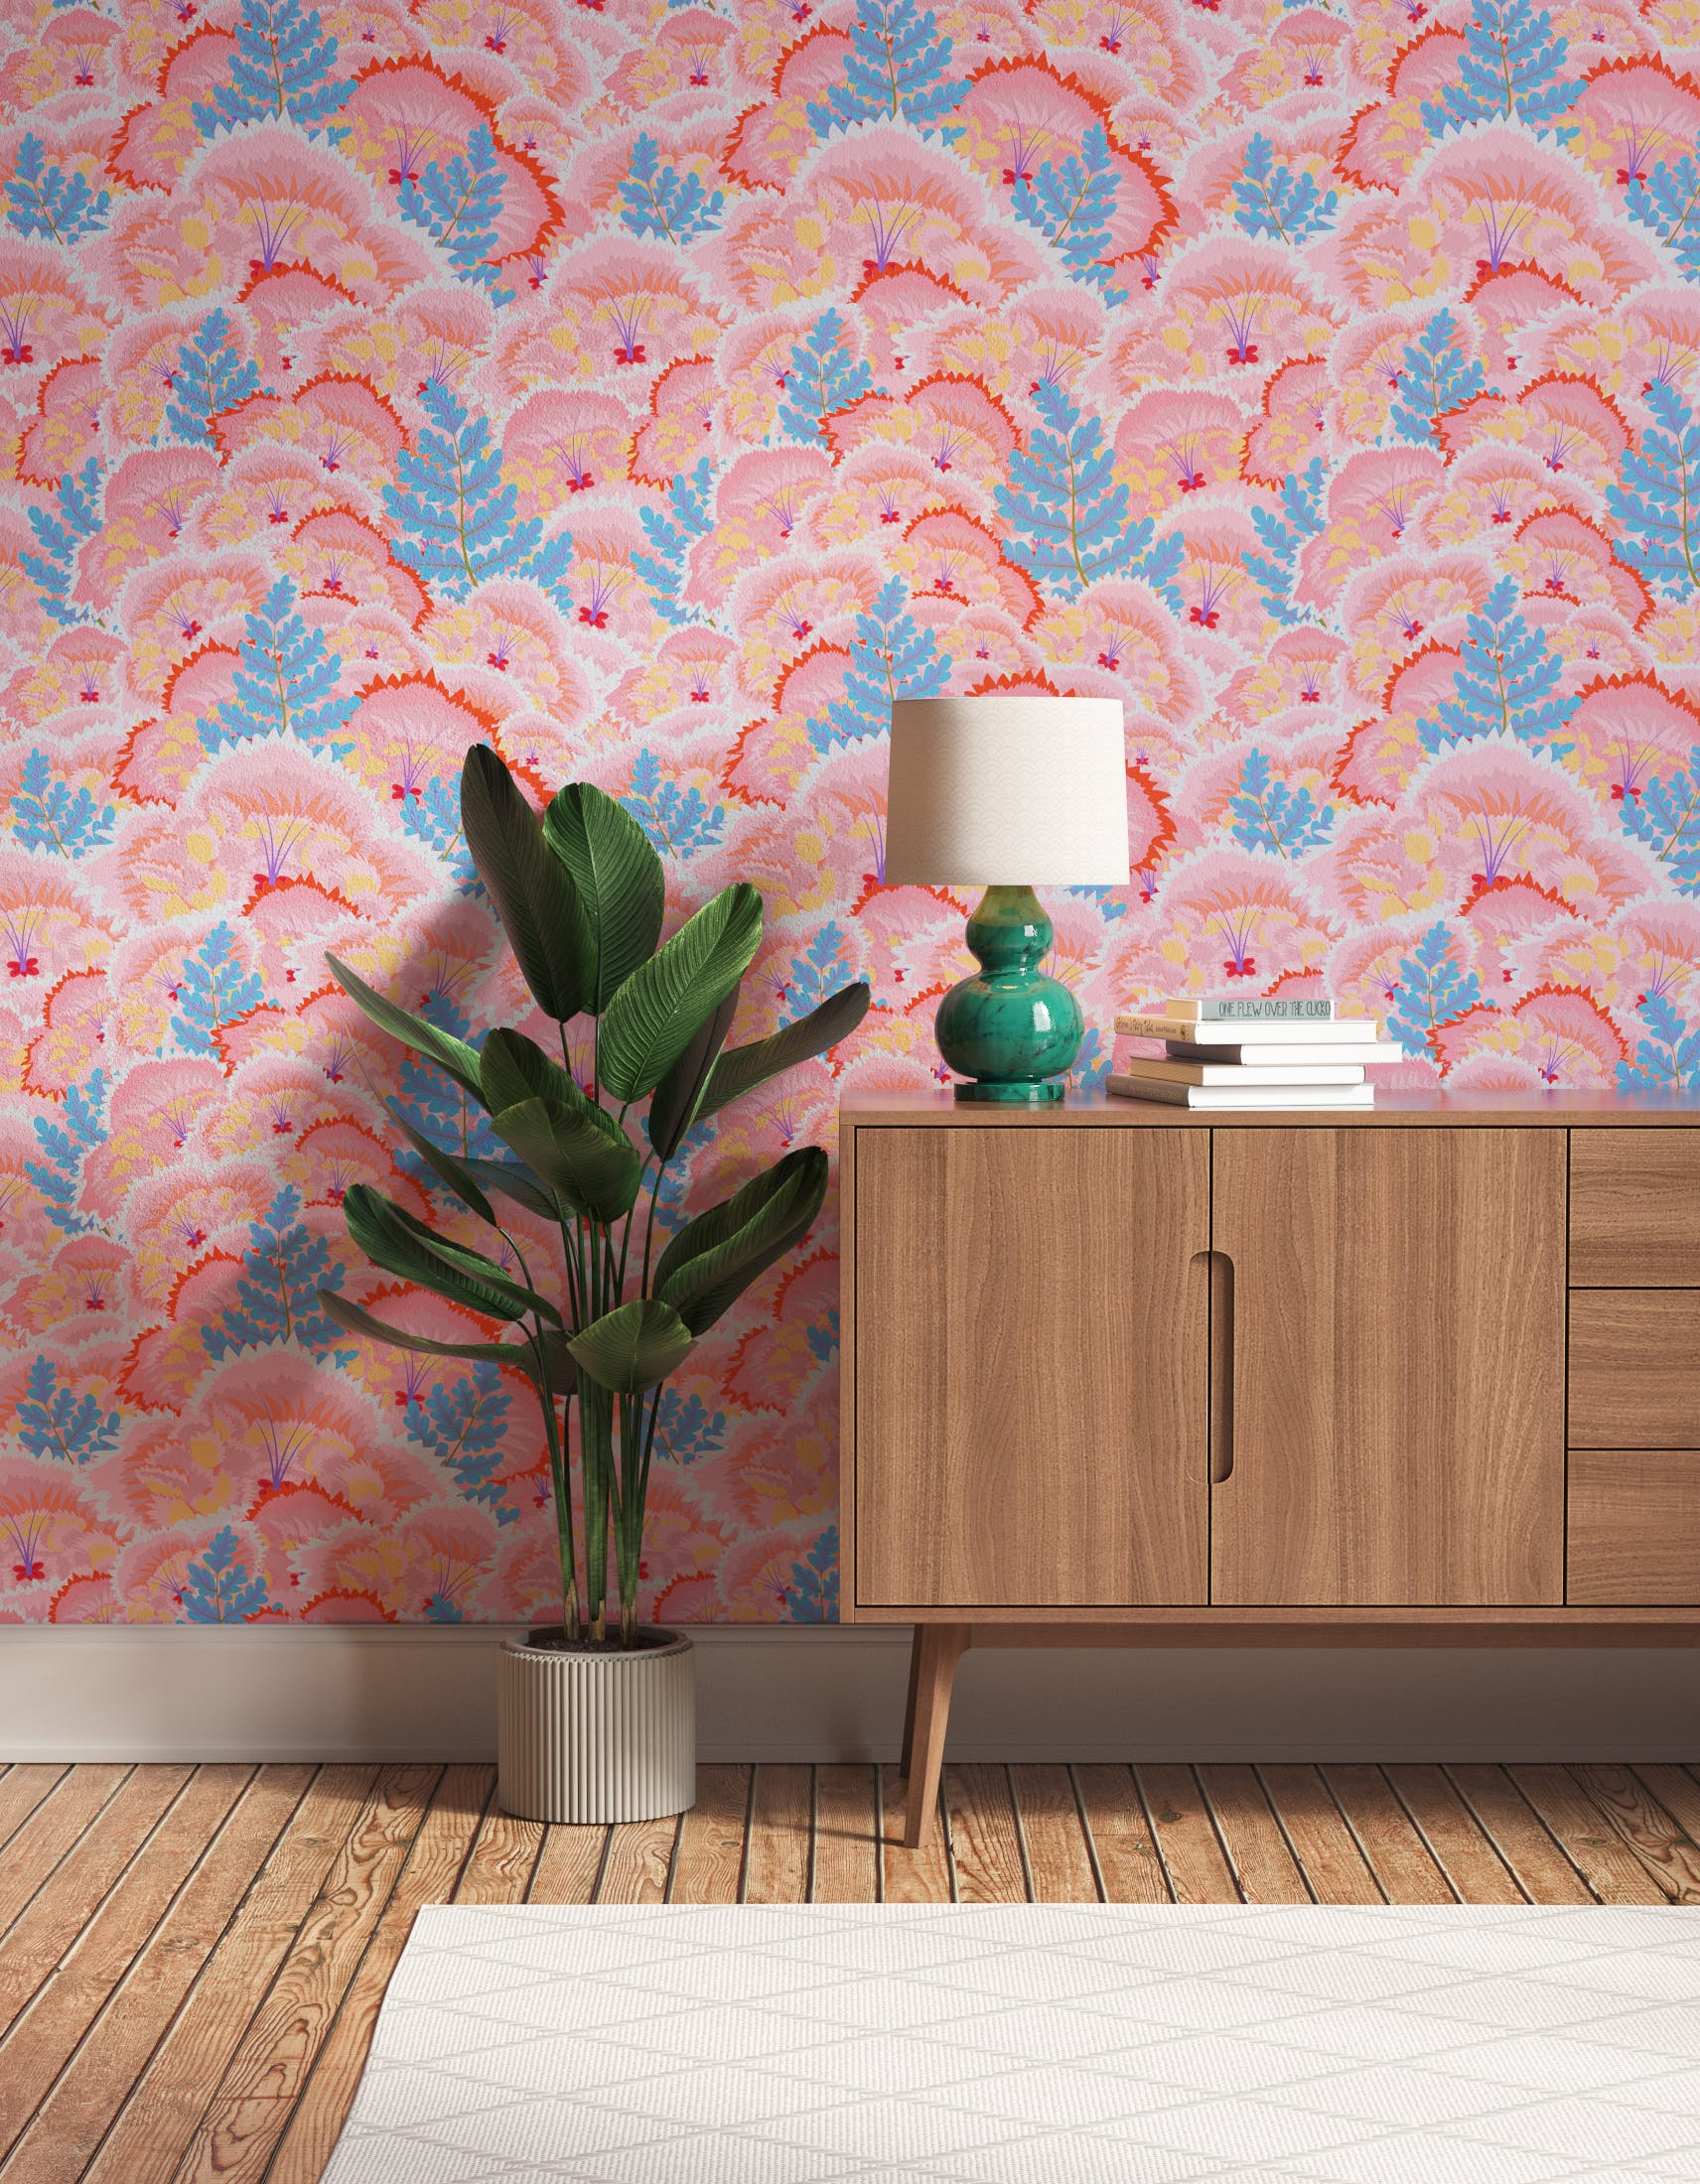 Hallway decorated with Lick Electric Poppies 01, a pink floral wallpaper